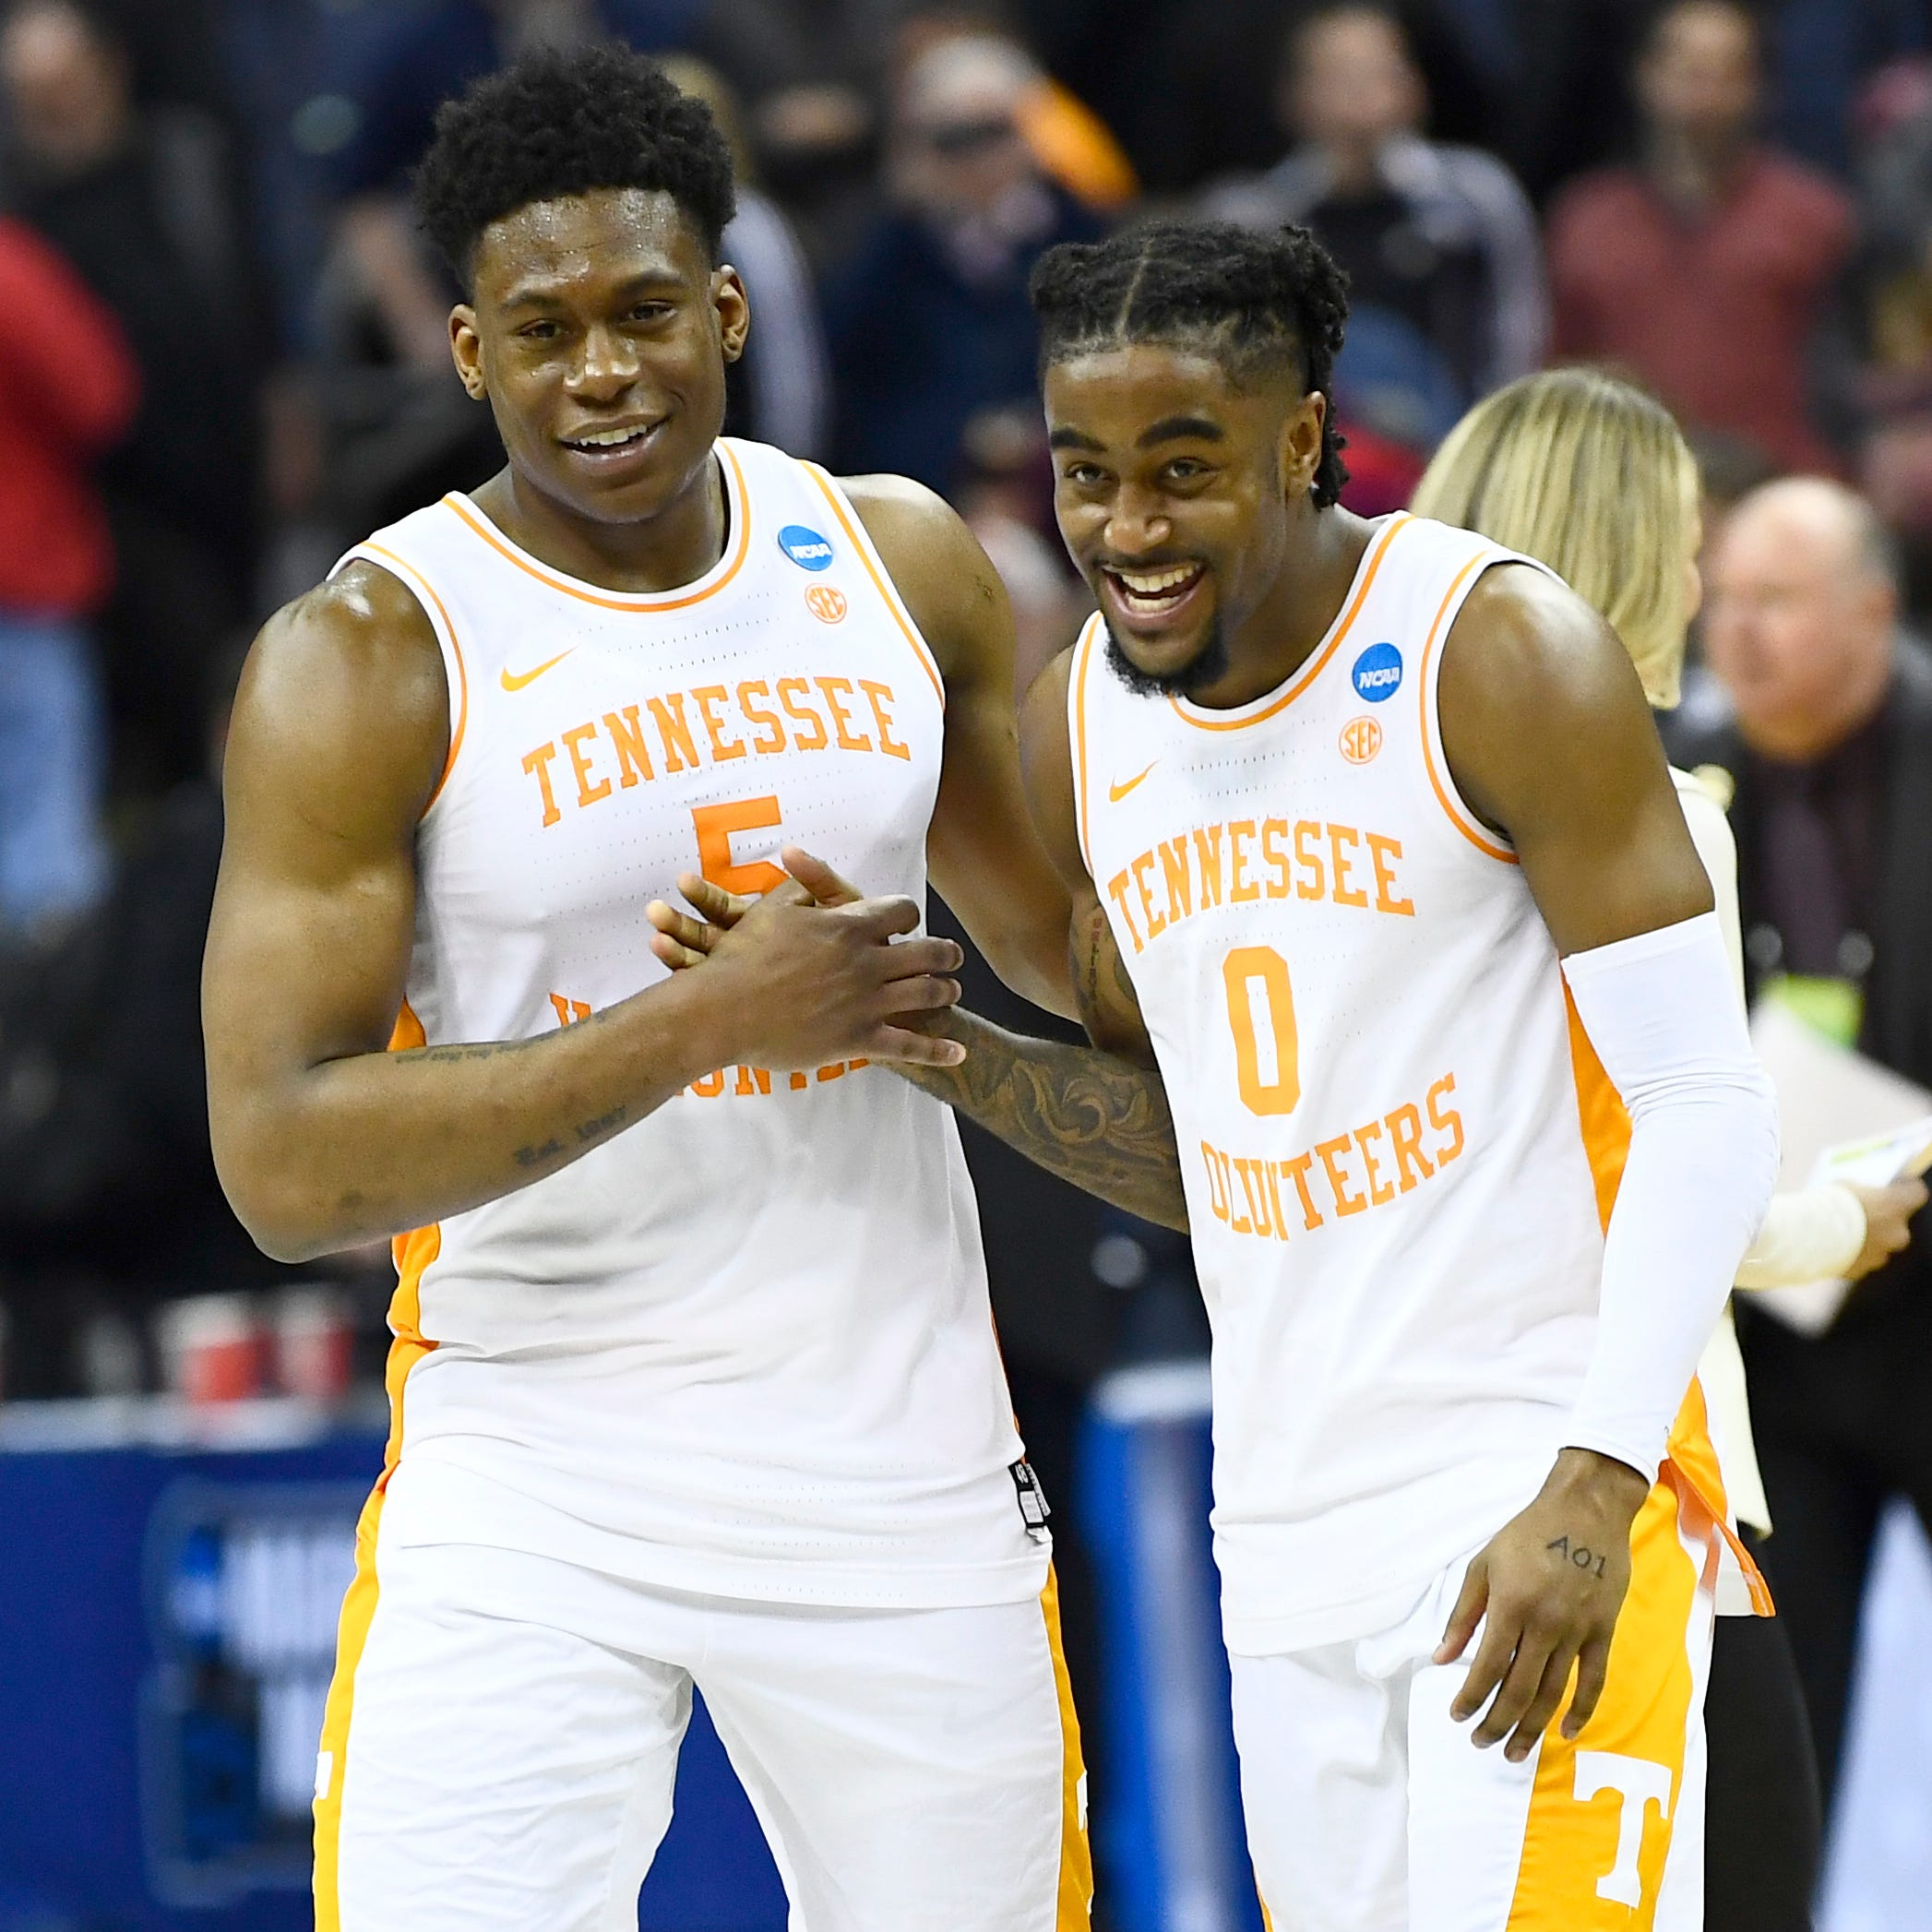 Tennessee basketball survives upset scare from No. 15 seed Colgate in NCAA Tournament